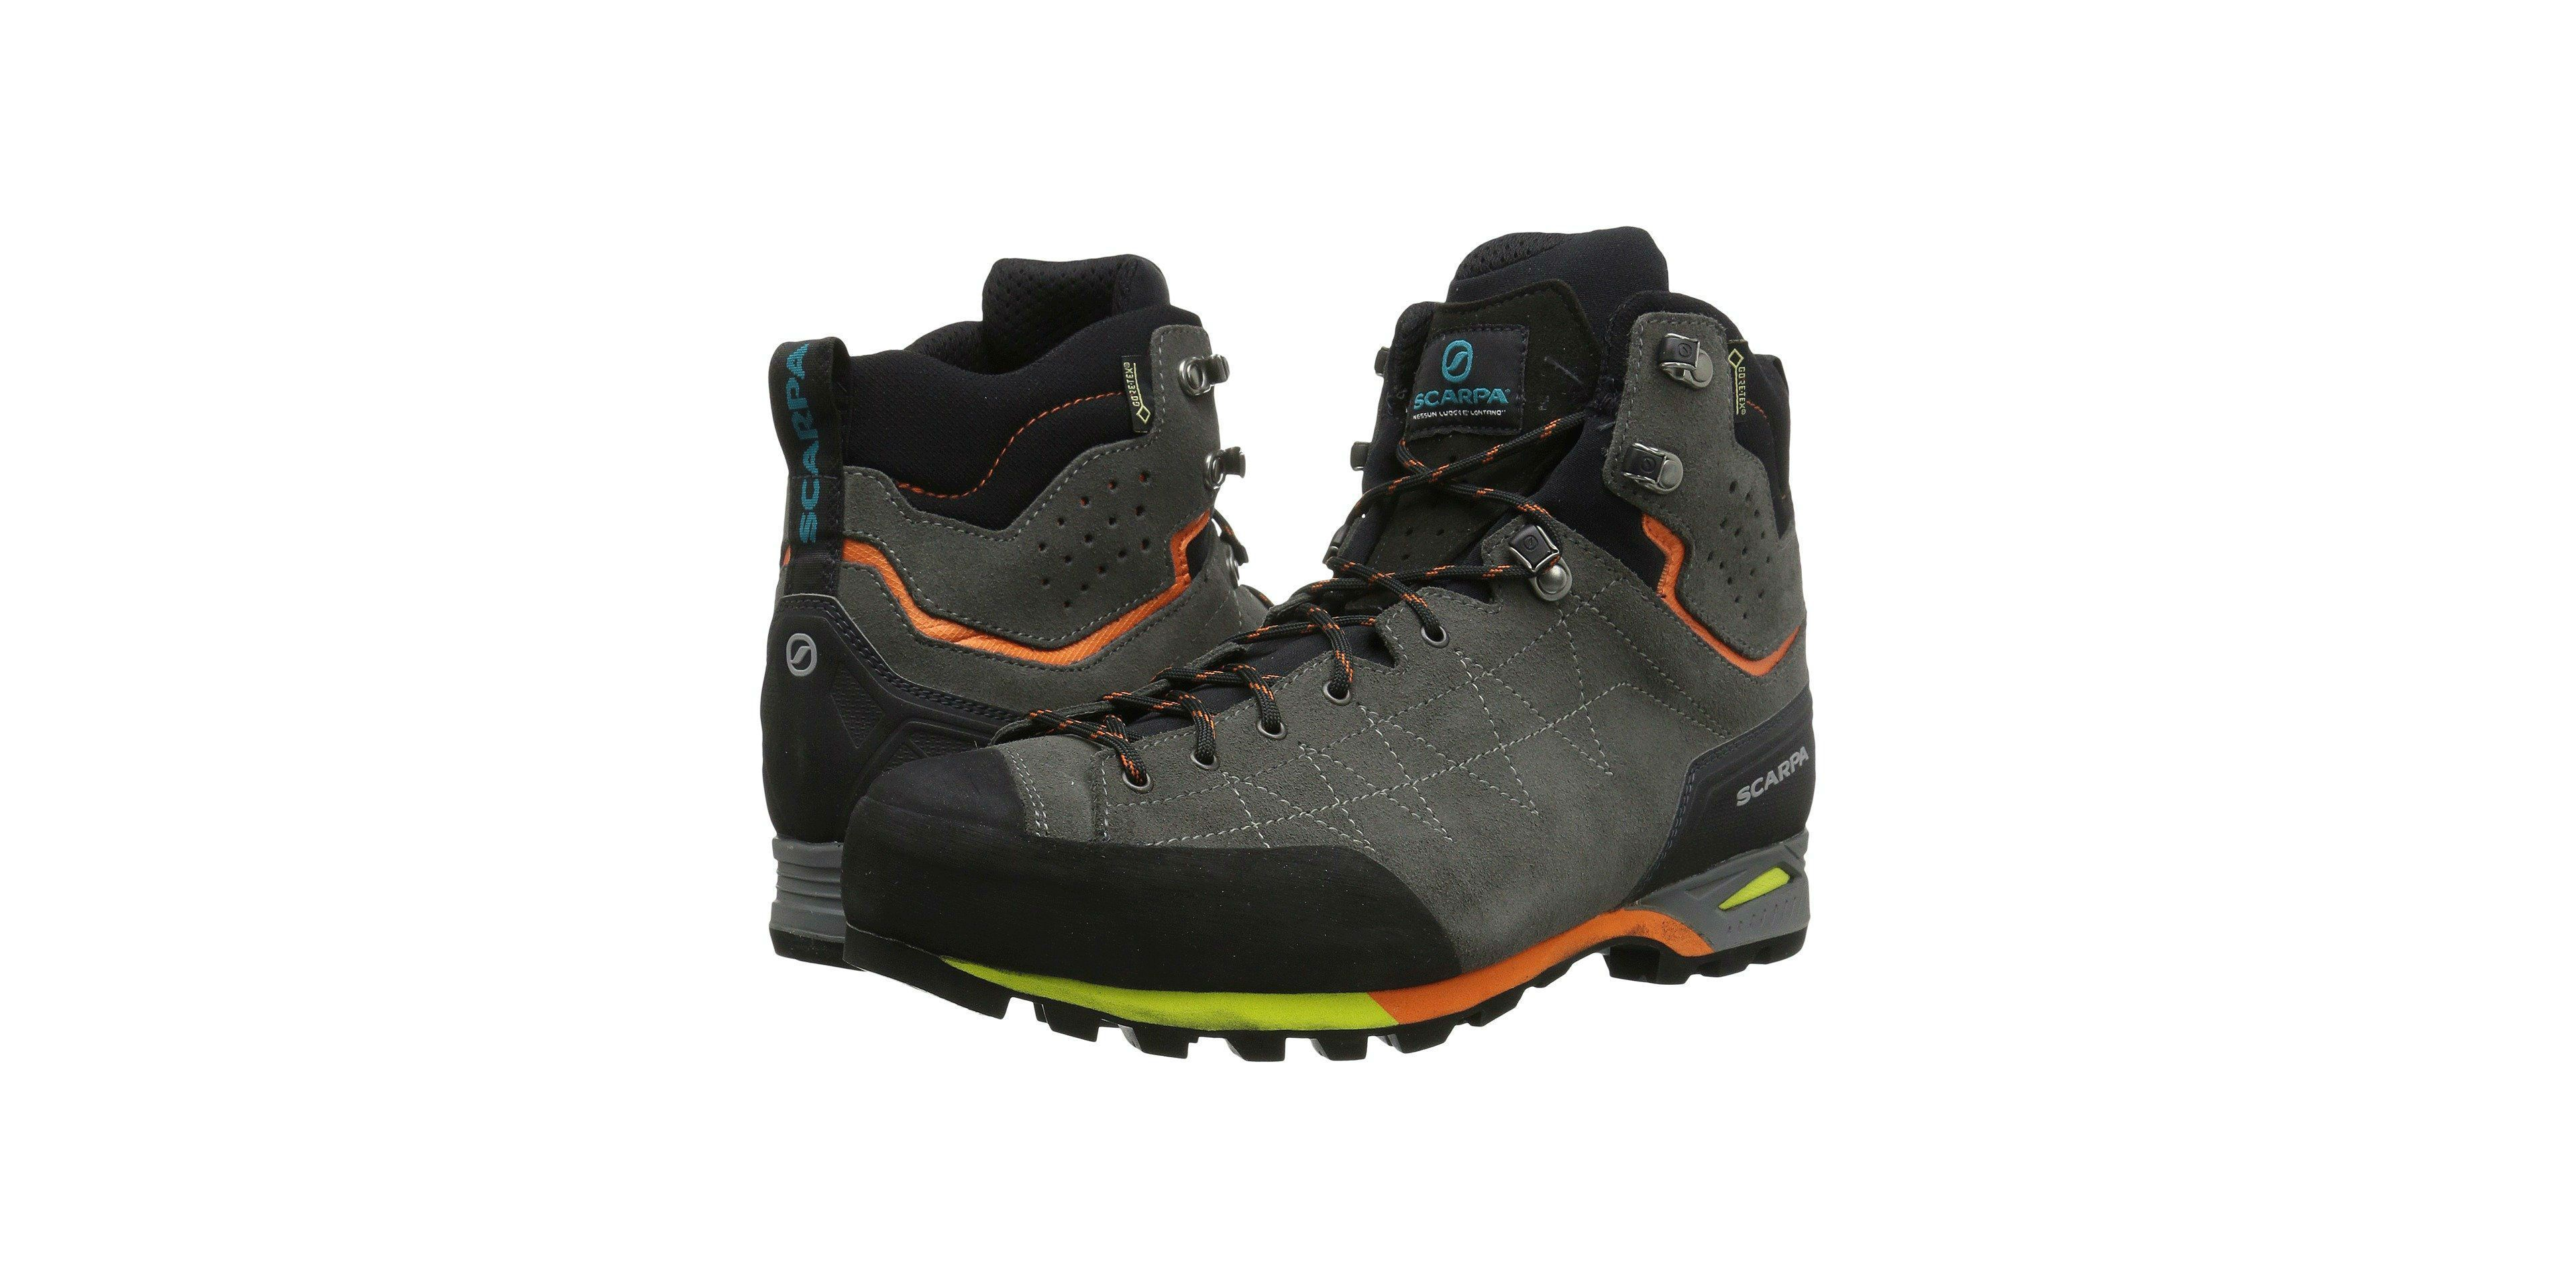 Best Hiking Boots 2019 | New Hiking Boots and Trail Running